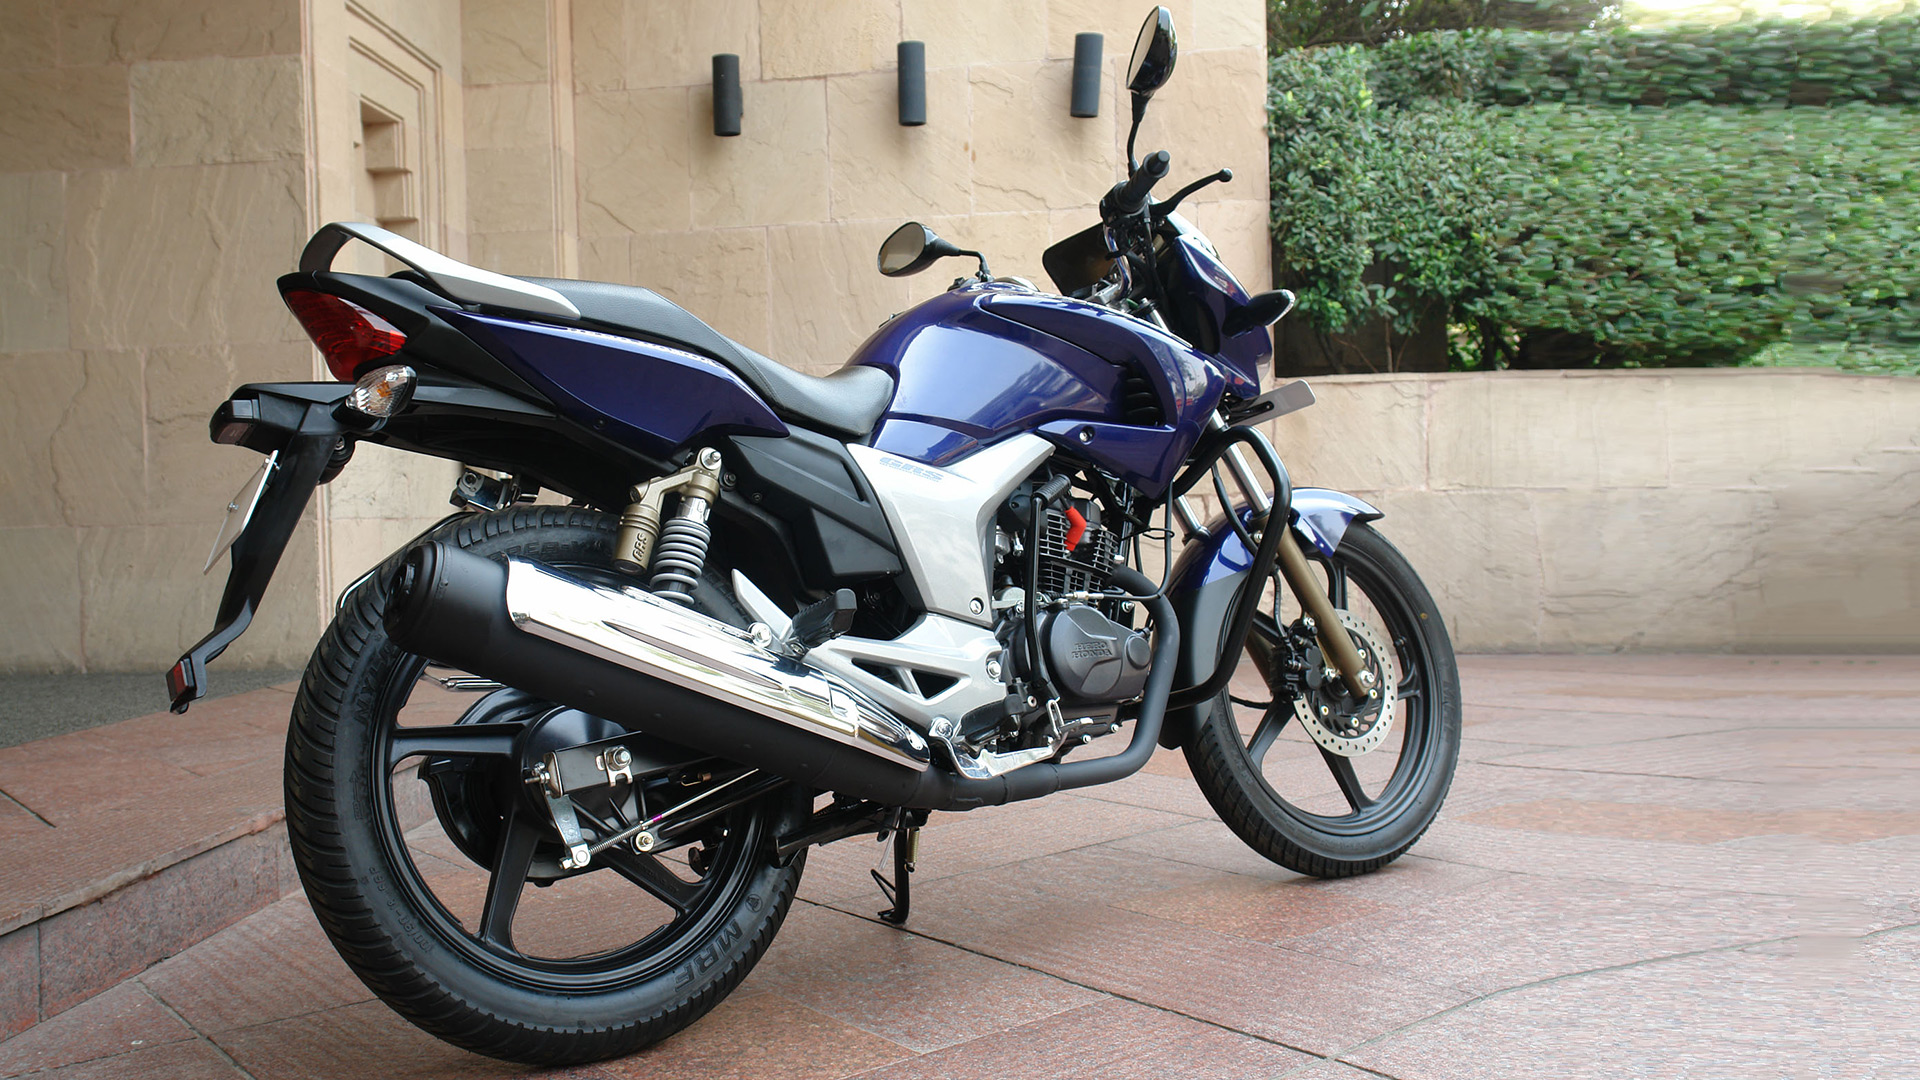 Hero Hunk 2013 Double Disc Price Mileage Reviews Specification Honda Bike 2014 Gallery